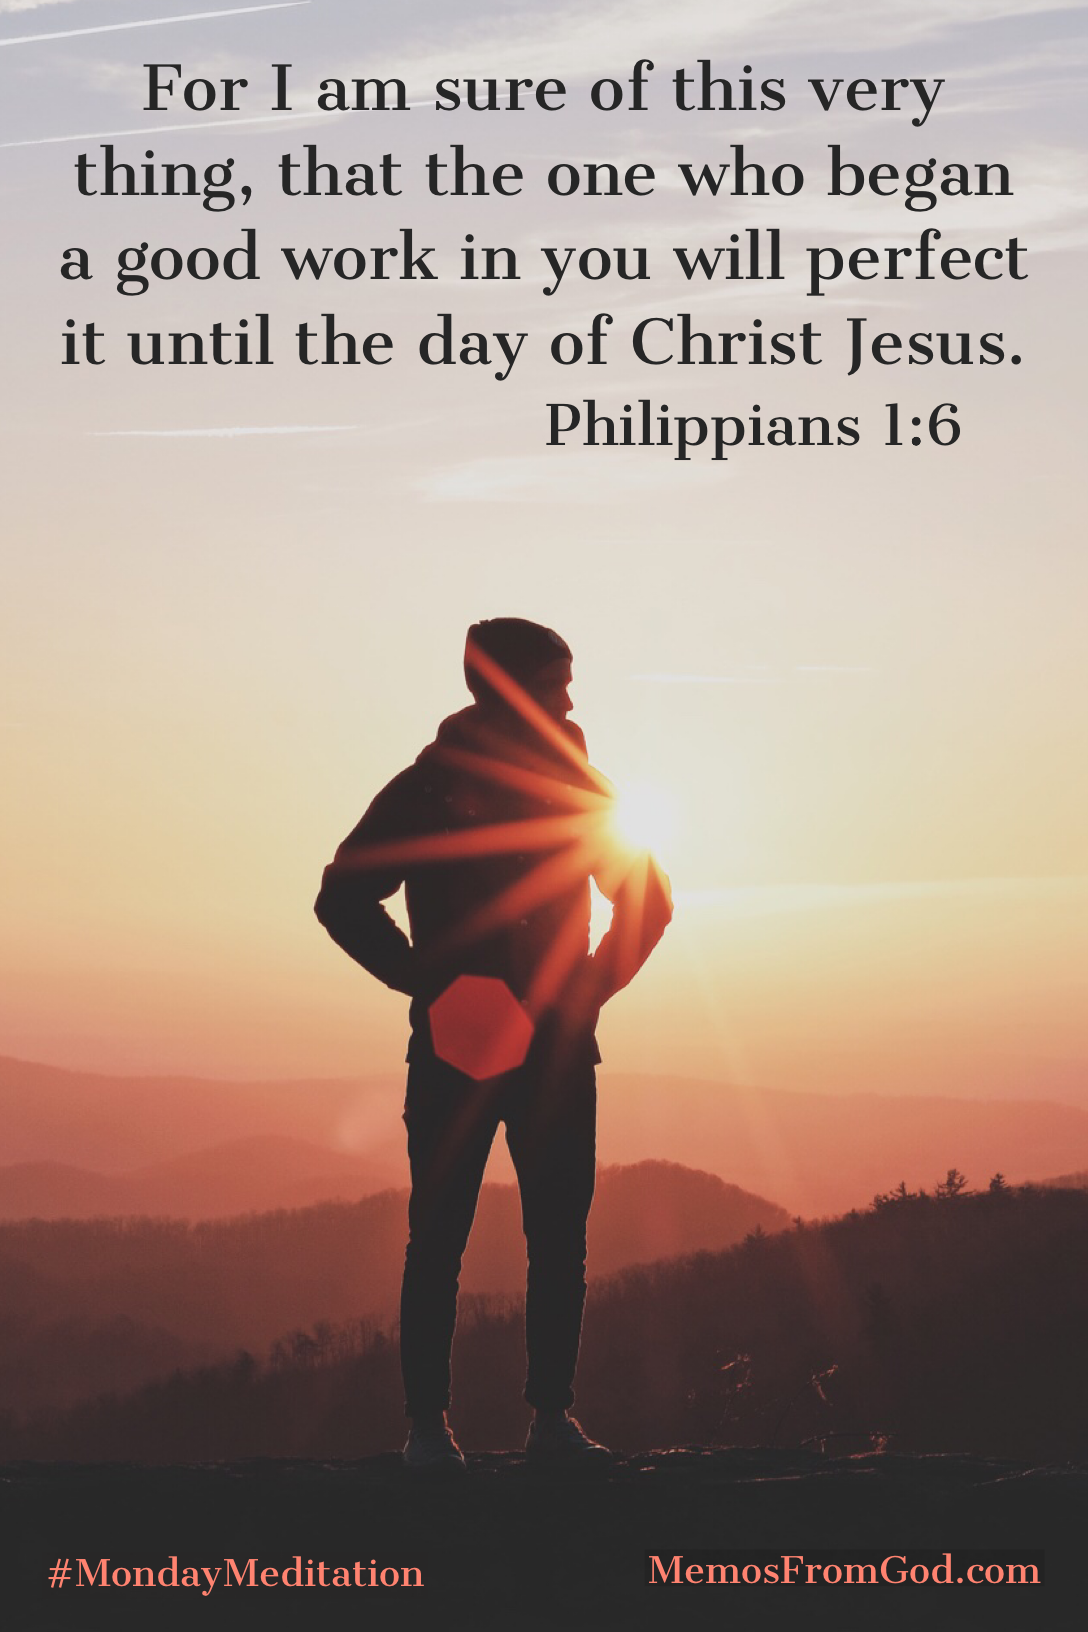 For I am sure of this very thing, that the one who began a good work in you will perfect it until the day of Christ Jesus. Philippians 1:6